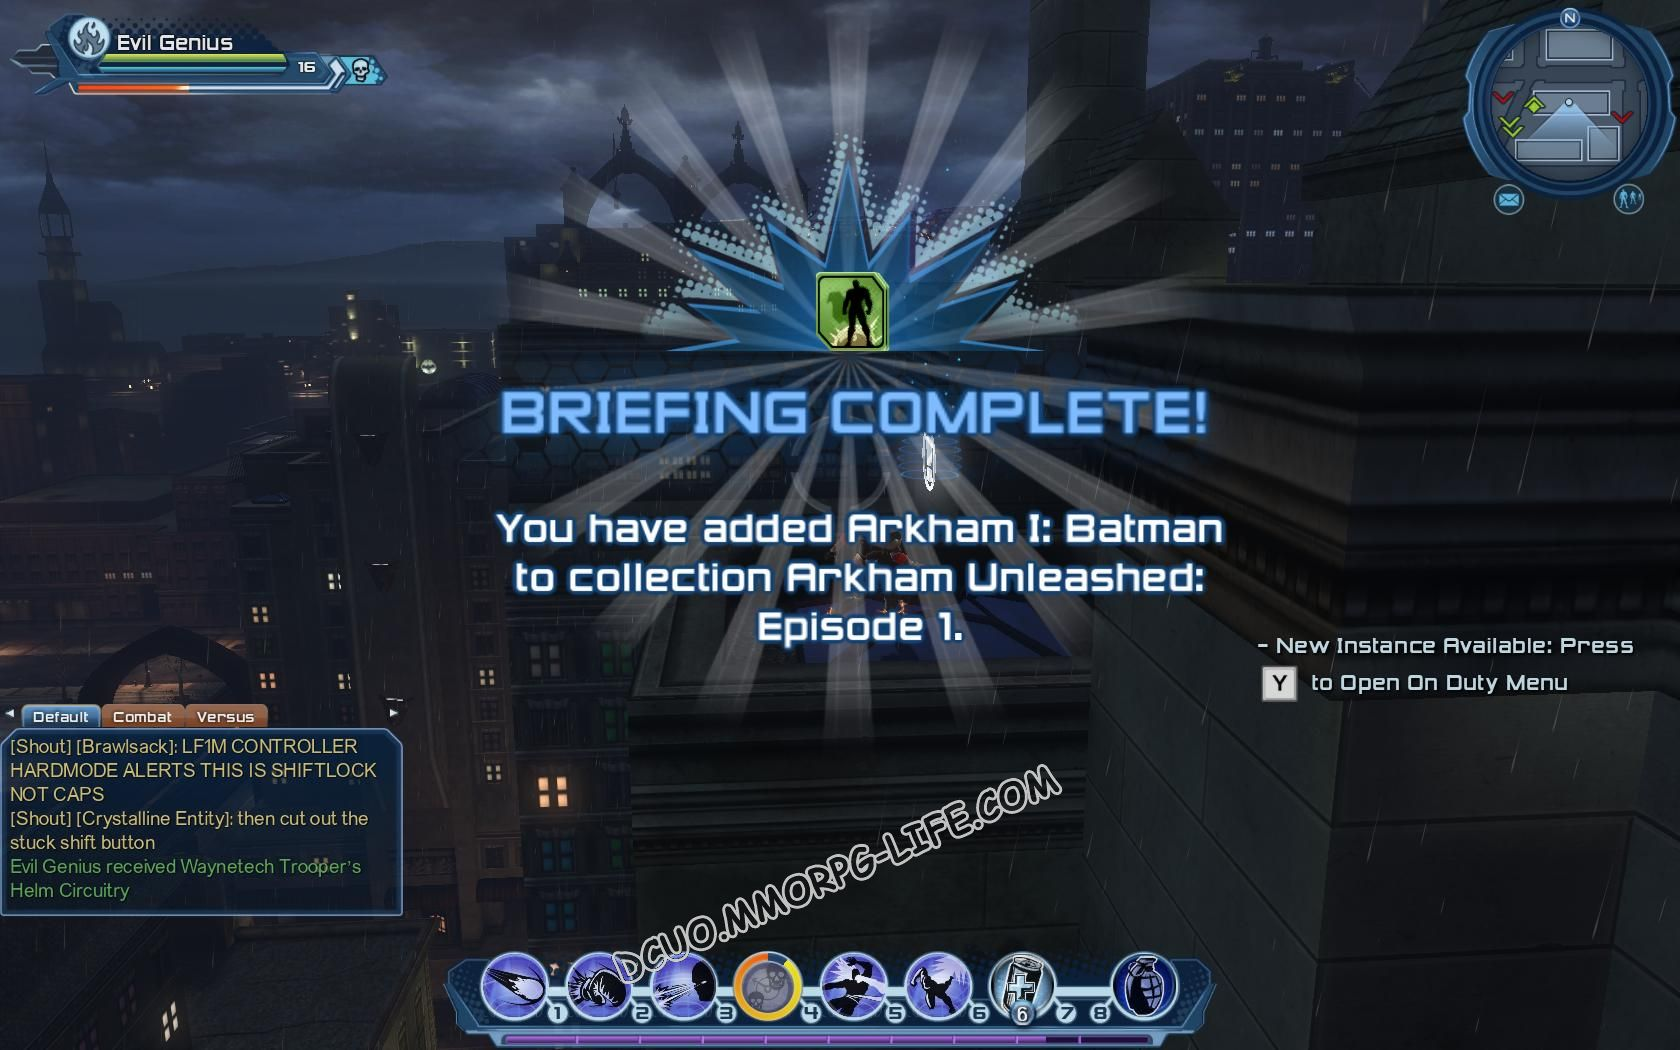 Briefing: Arkham Unleashed: Episode 1, step 5 Arkham I: Batman  image 631 middle size